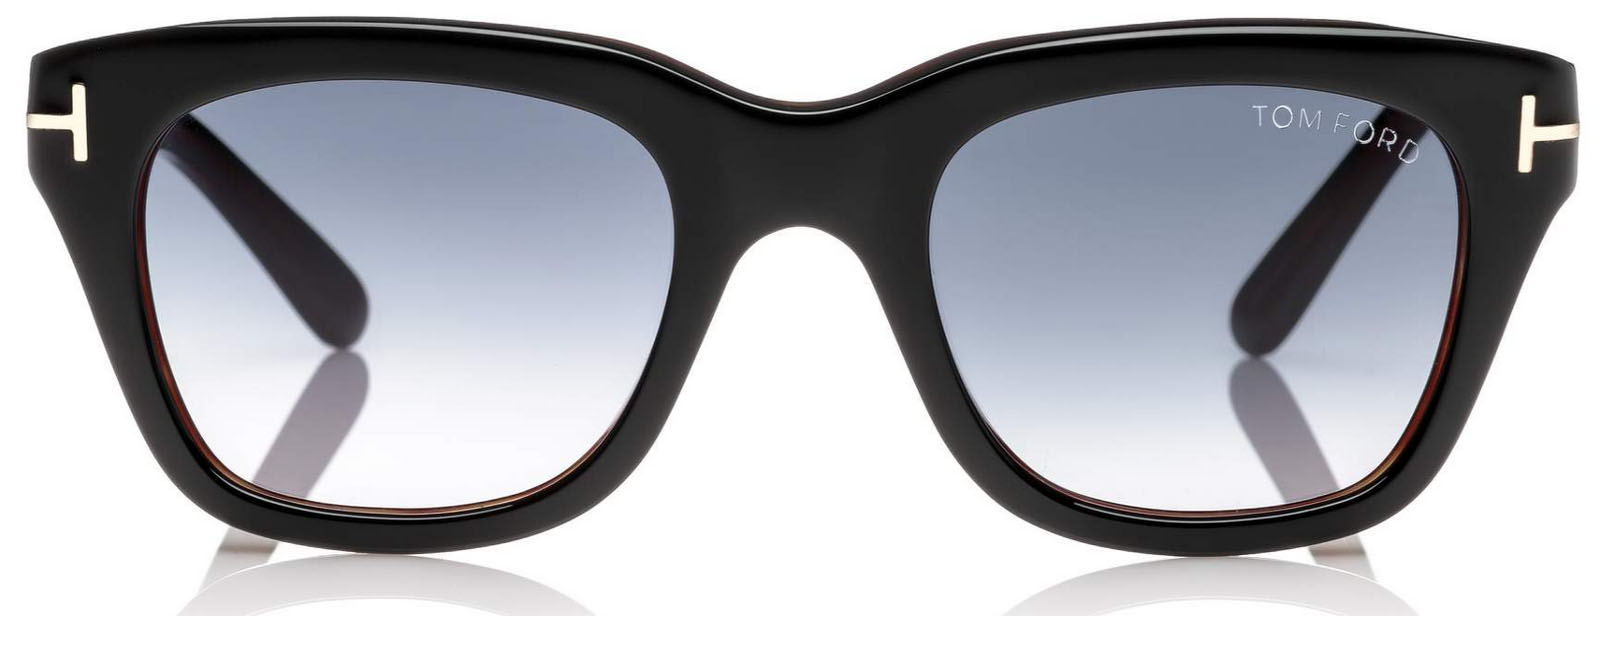 Optik Käpernick - Wiesbaden - TOM FORD eyewear